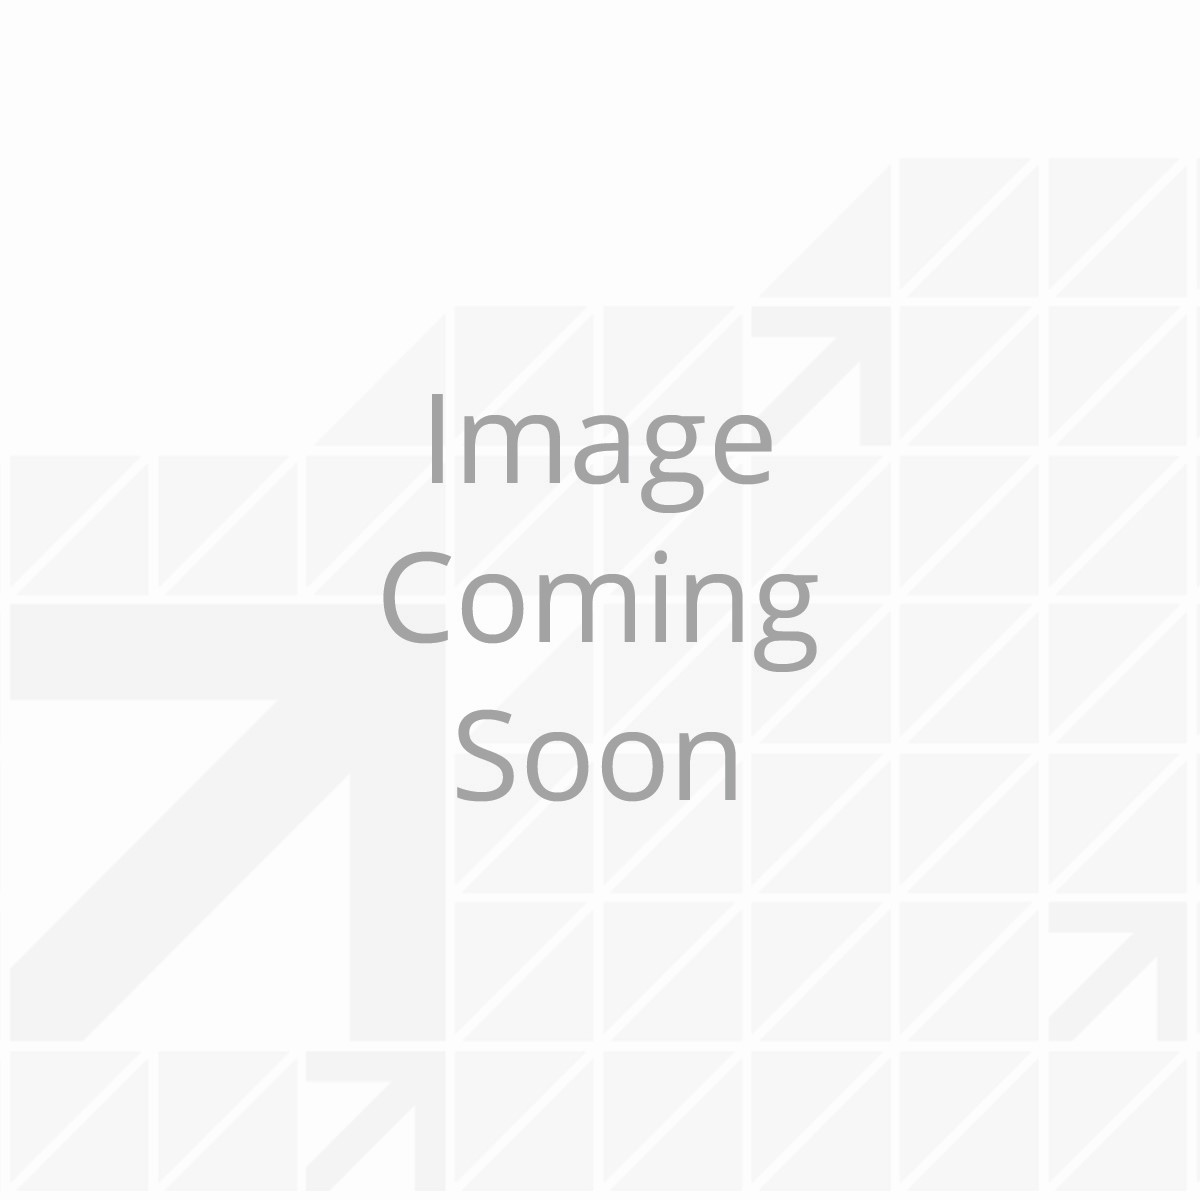 North Face Men's Zip-Up Jacket